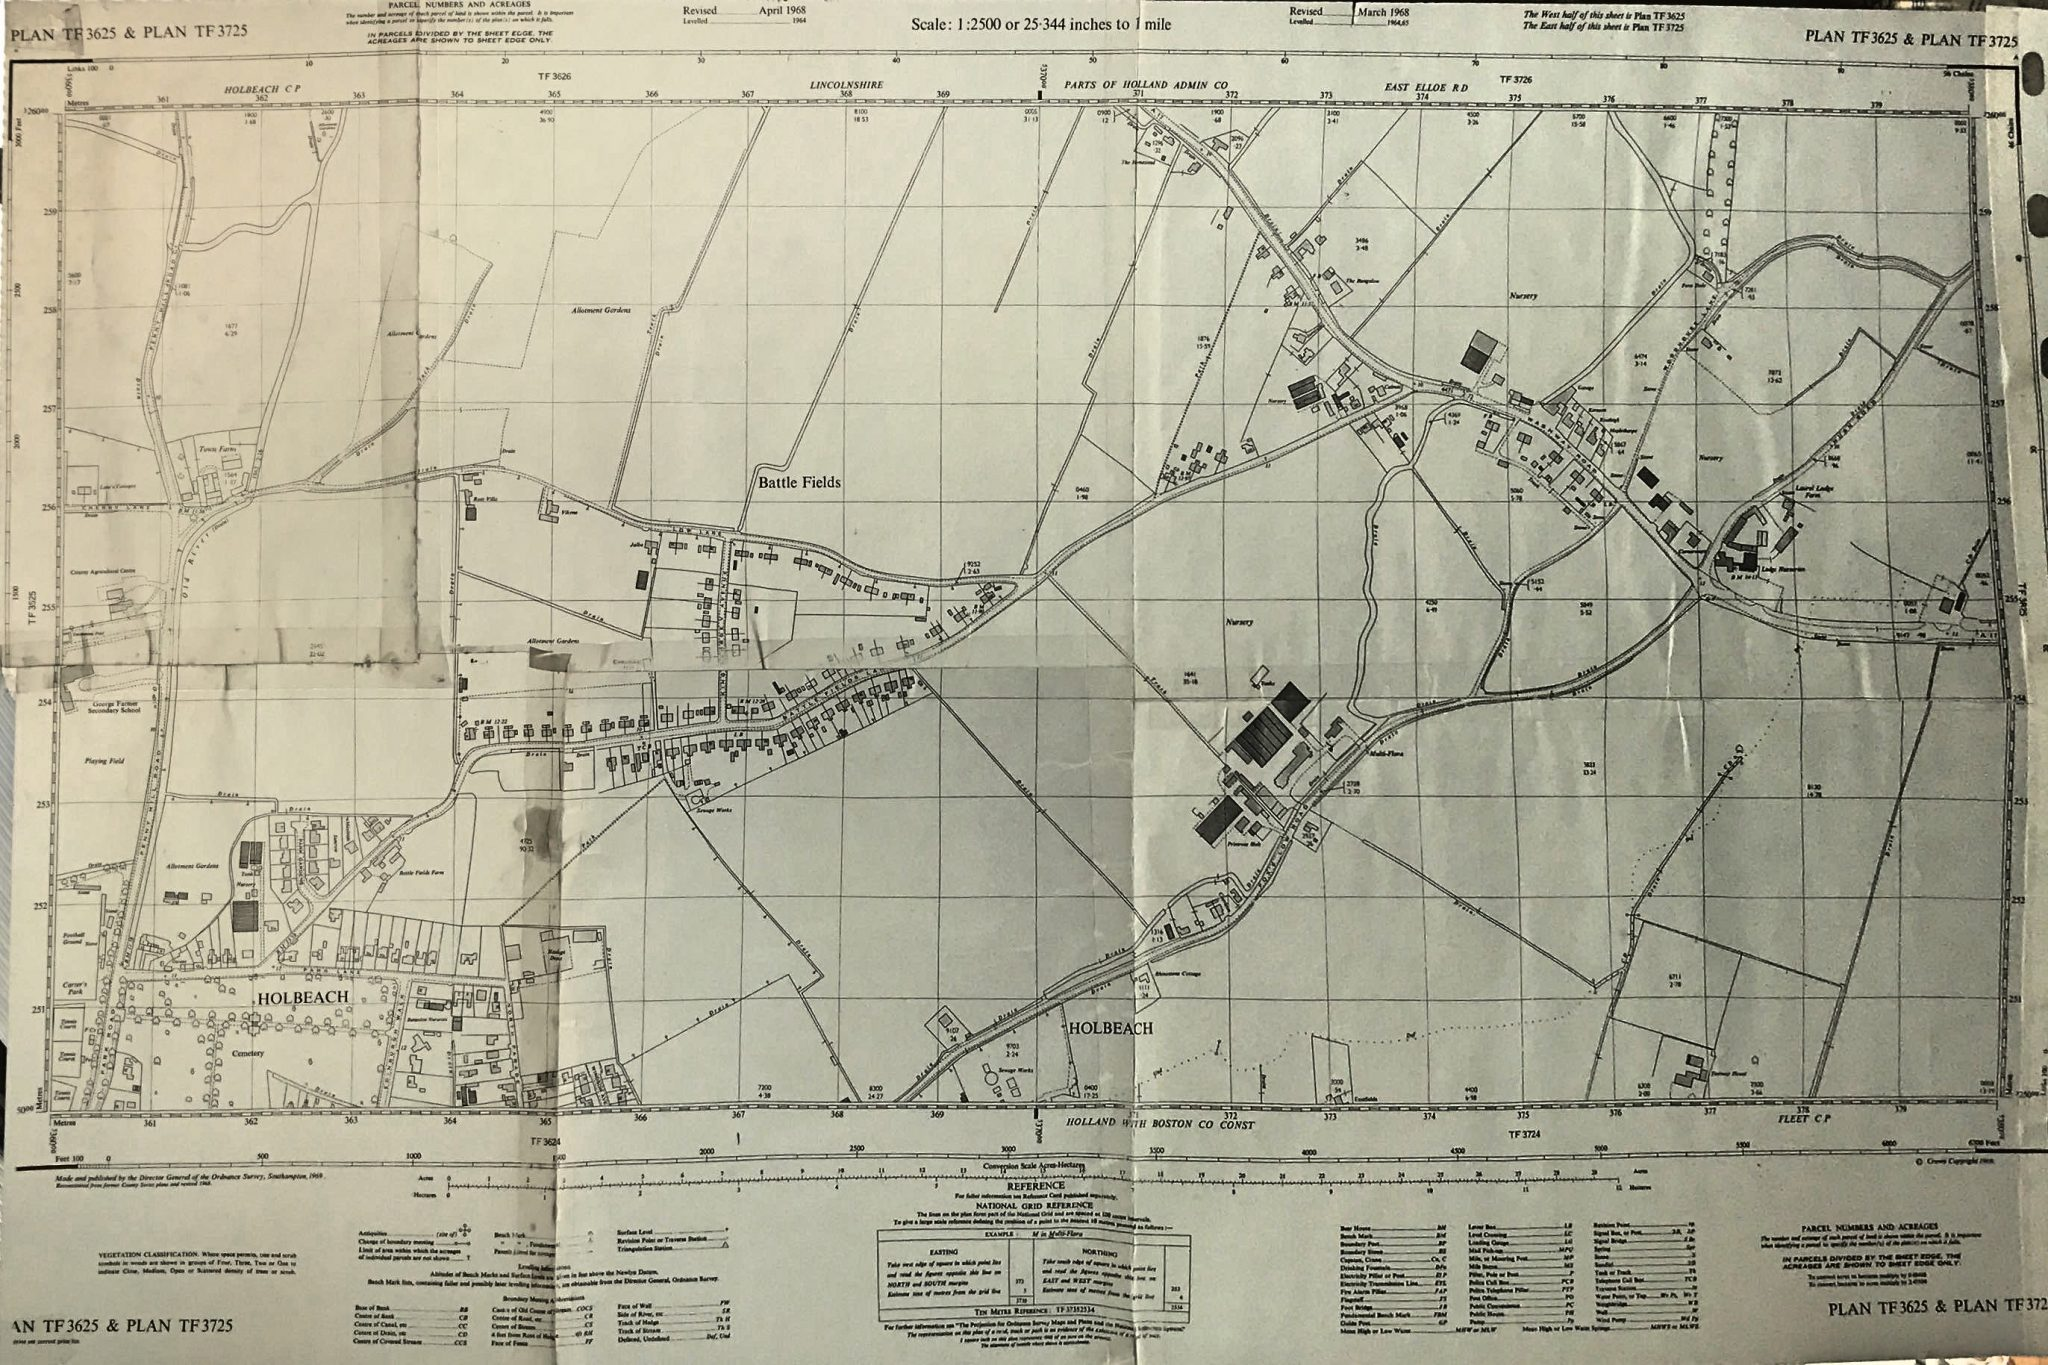 Map showing part of Holbeach